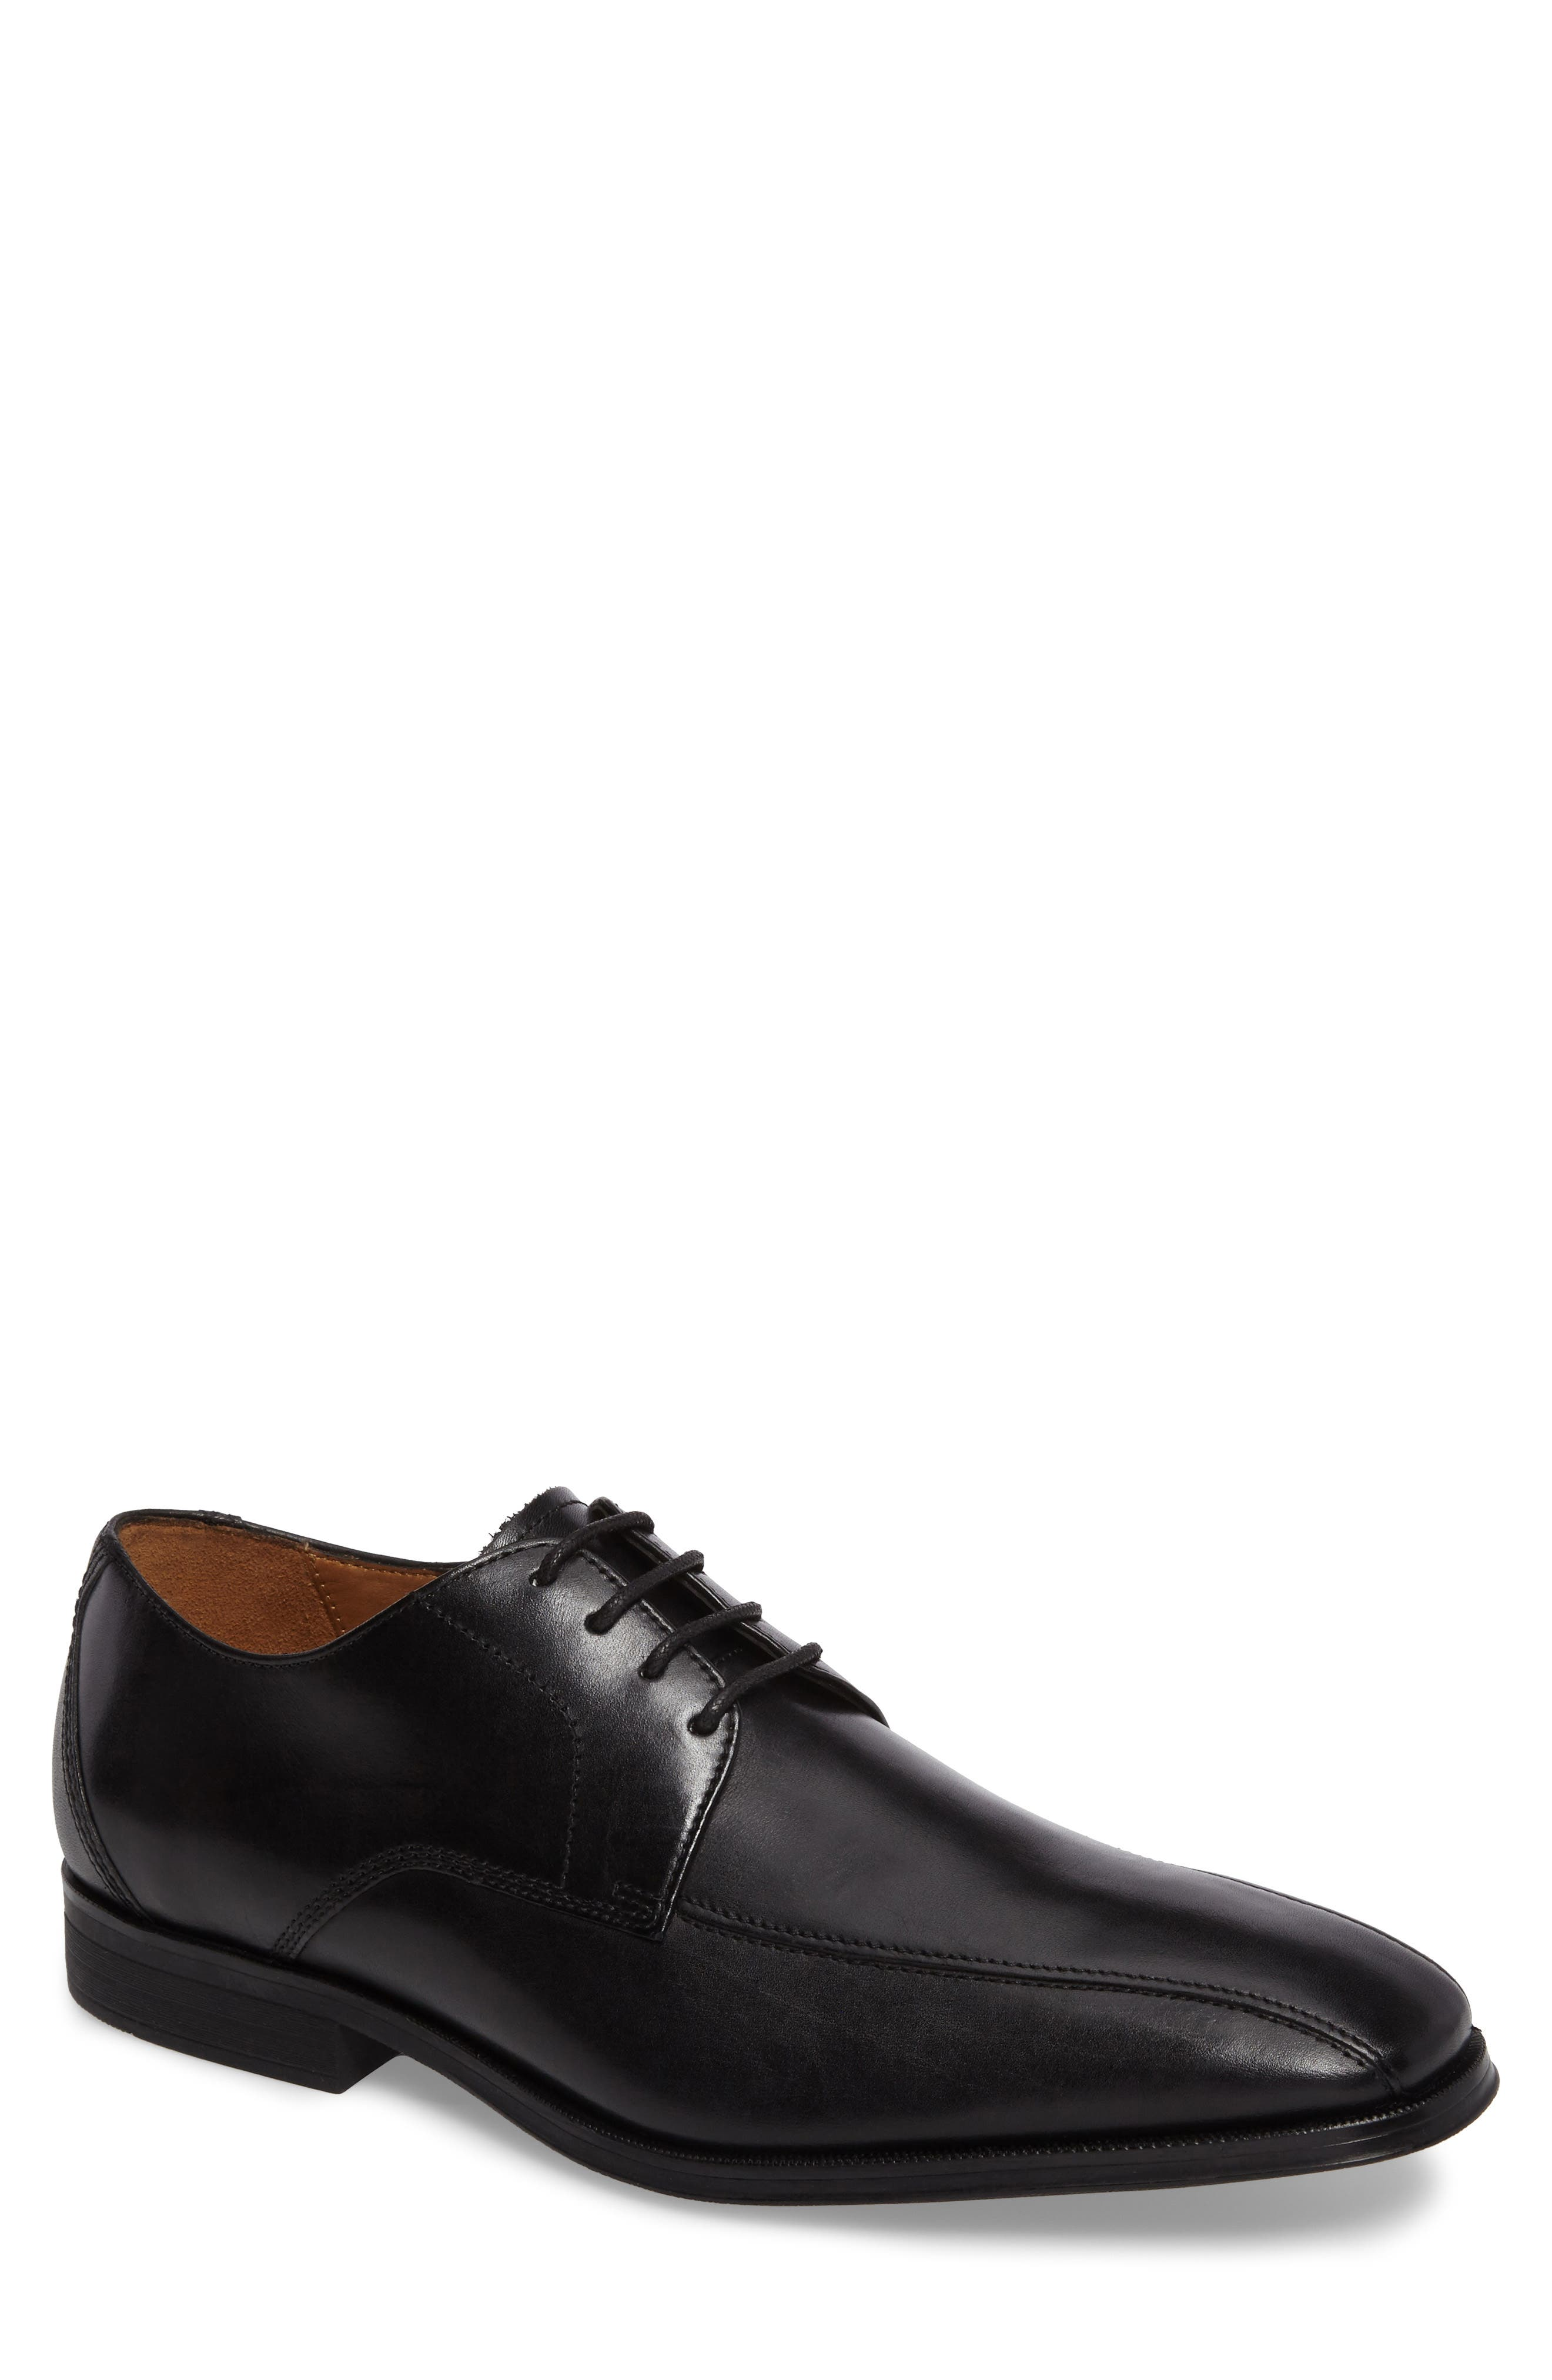 Clarks Gilman Mode Derby,                             Main thumbnail 1, color,                             BLACK LEATHER